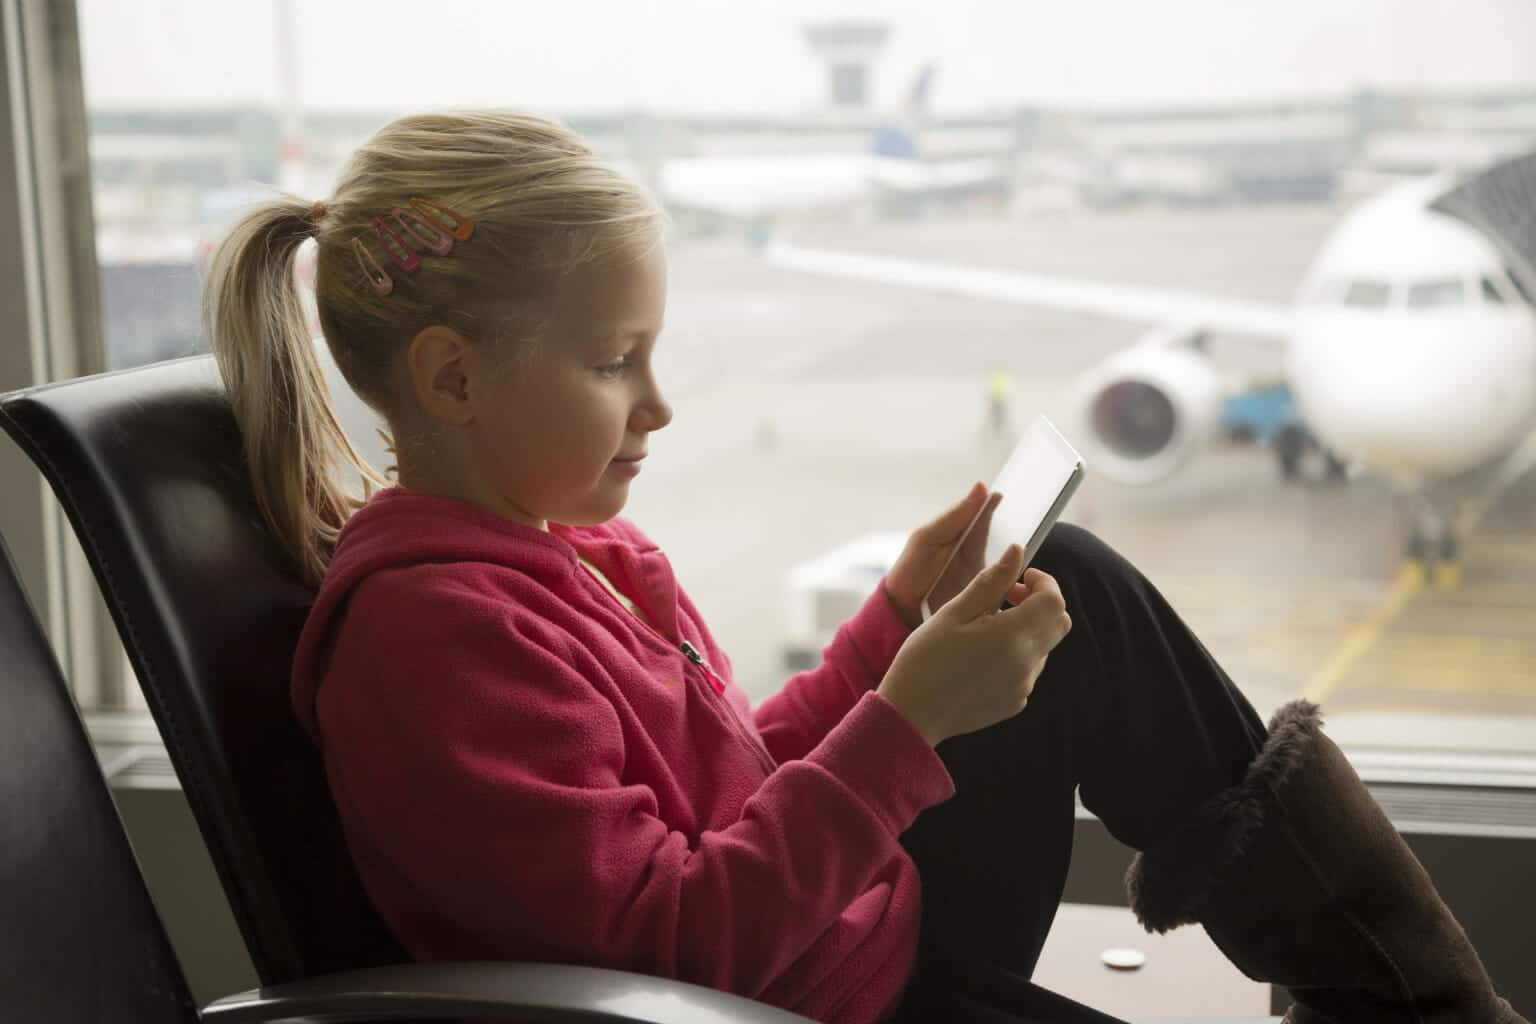 Children and down time at Airports